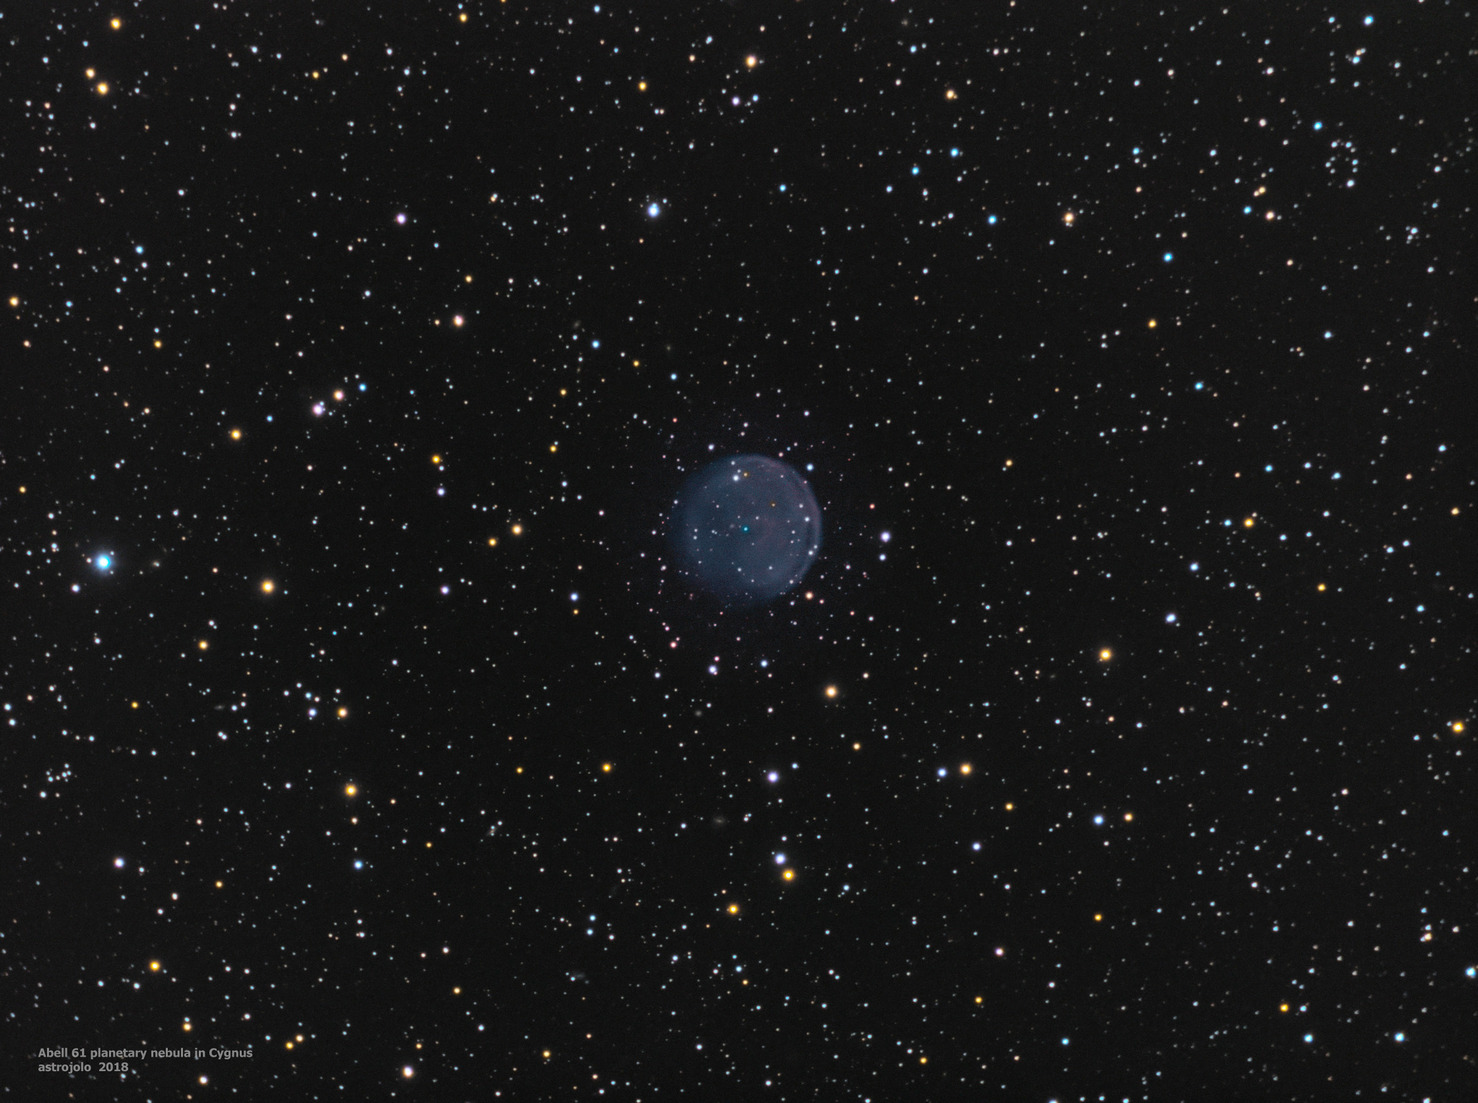 Abell 61 nebula Date:       05,06,14,17,18,19.05.2018 Location:   Nieborowice, Poland Telescope:  Meade ACF 10` Corrector:  AP CCDT67 Camera:     QHY163M Mount:      SW EQ6 Guiding:    SW 80/400 + ASI290MM Exposure:   Ha 40x5, Oiii 30x5, LRGB 40:30:20:30x1 minutes Conditions: seeing average-good, transparency average, Moon present